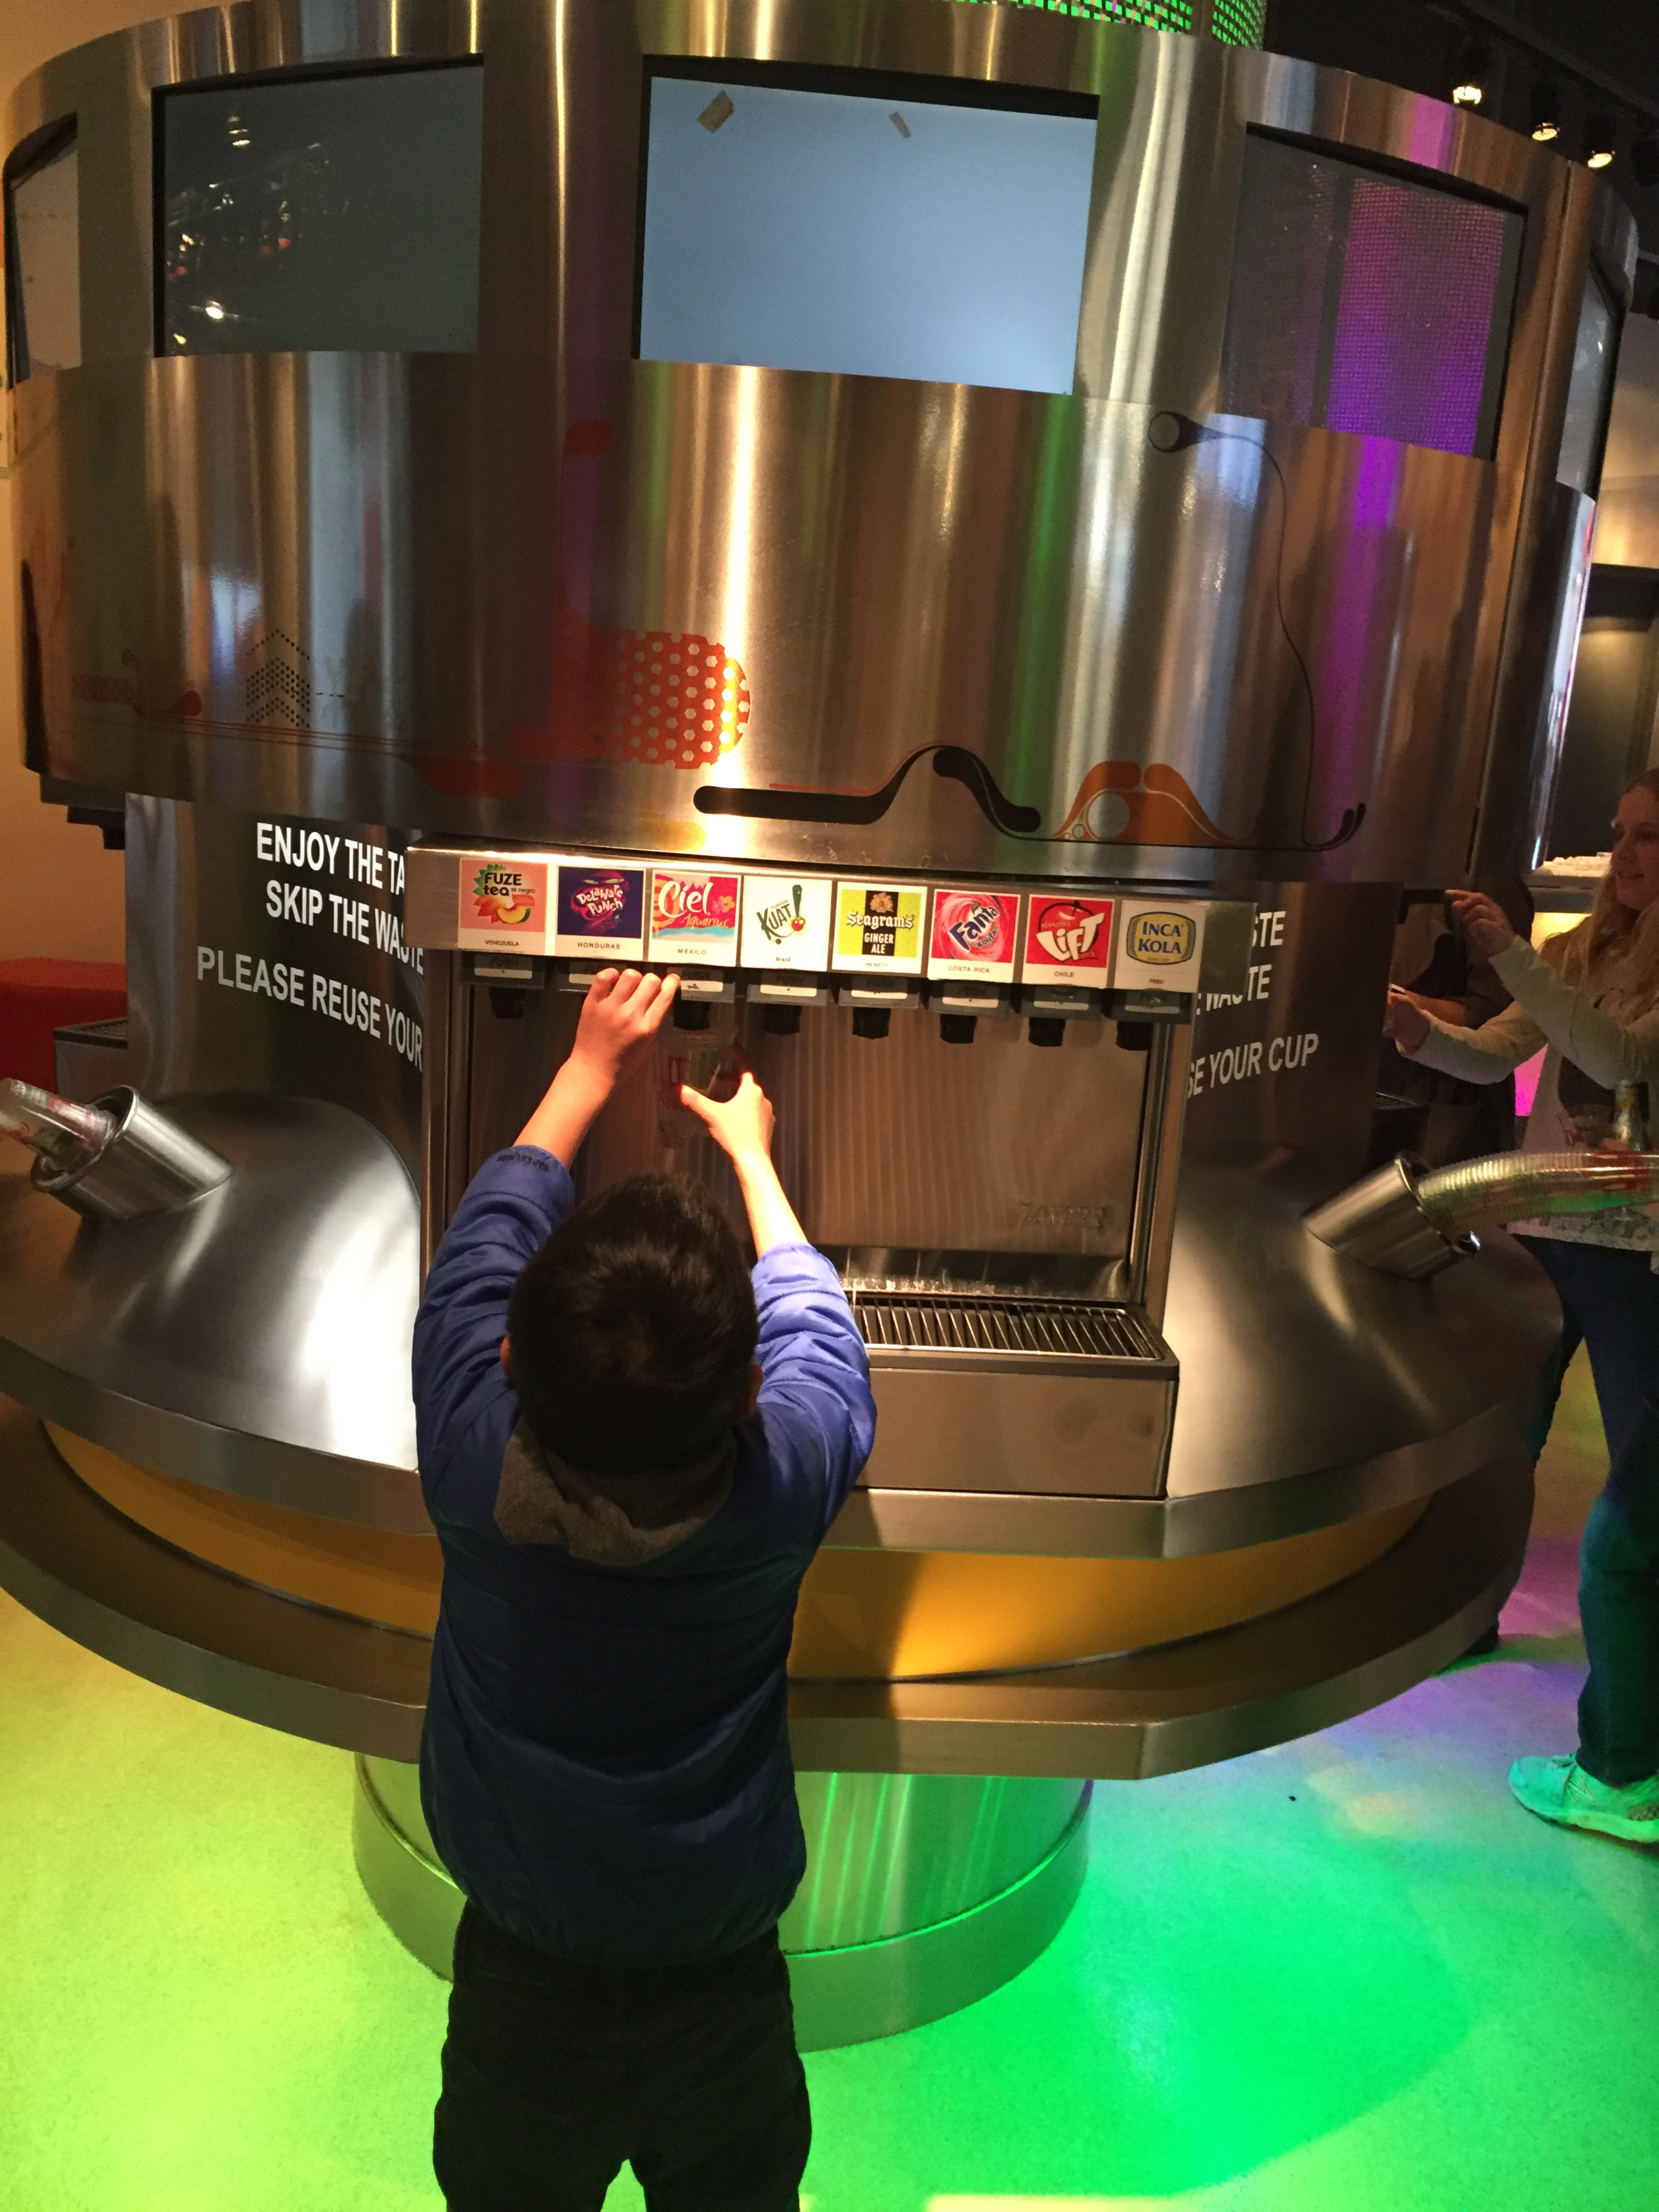 A boy reaches up to dispense a beverage called